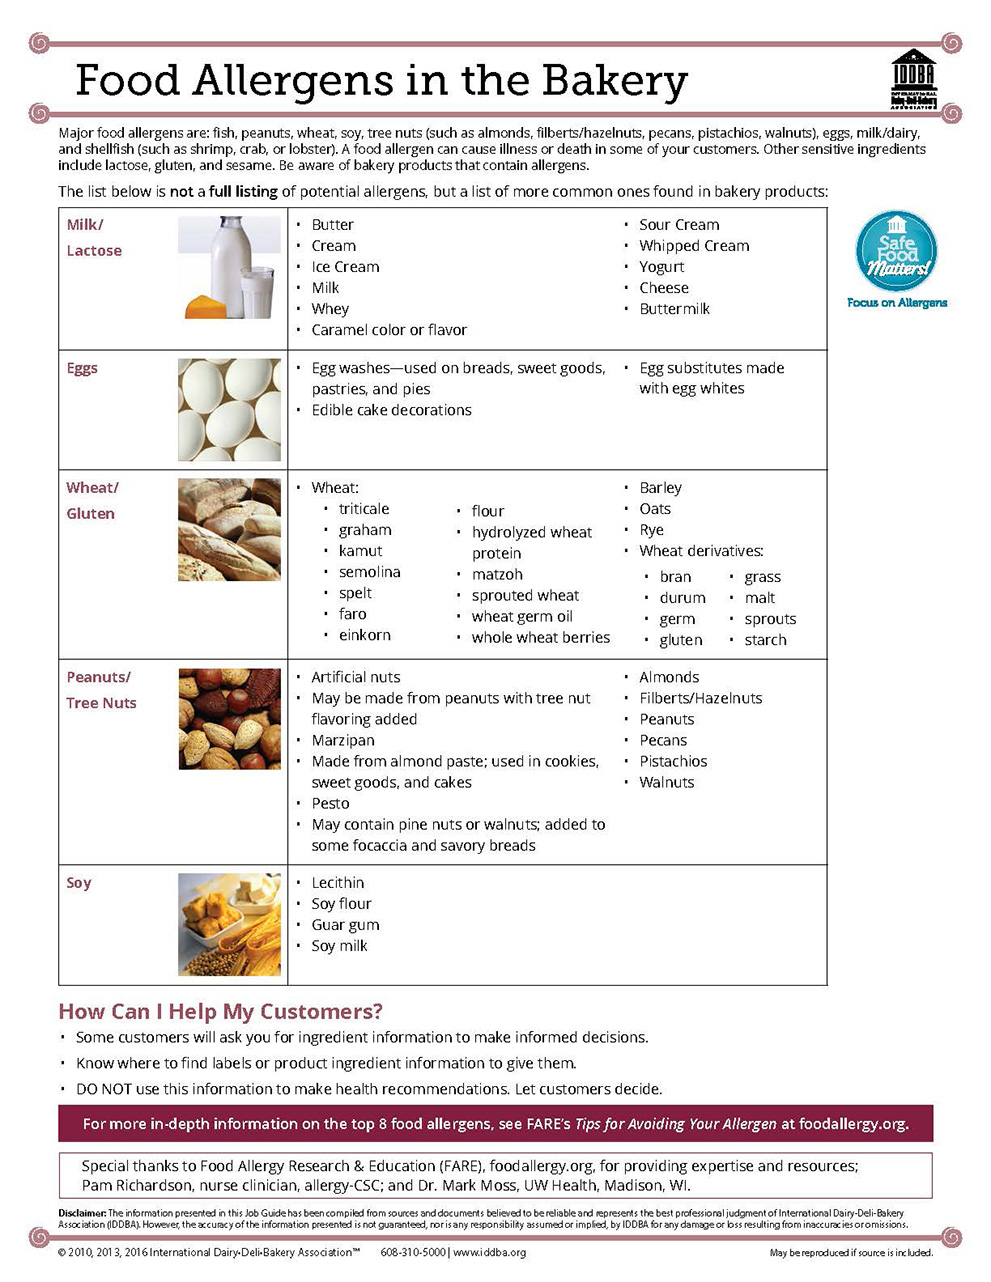 Food Allergens in the Bakery